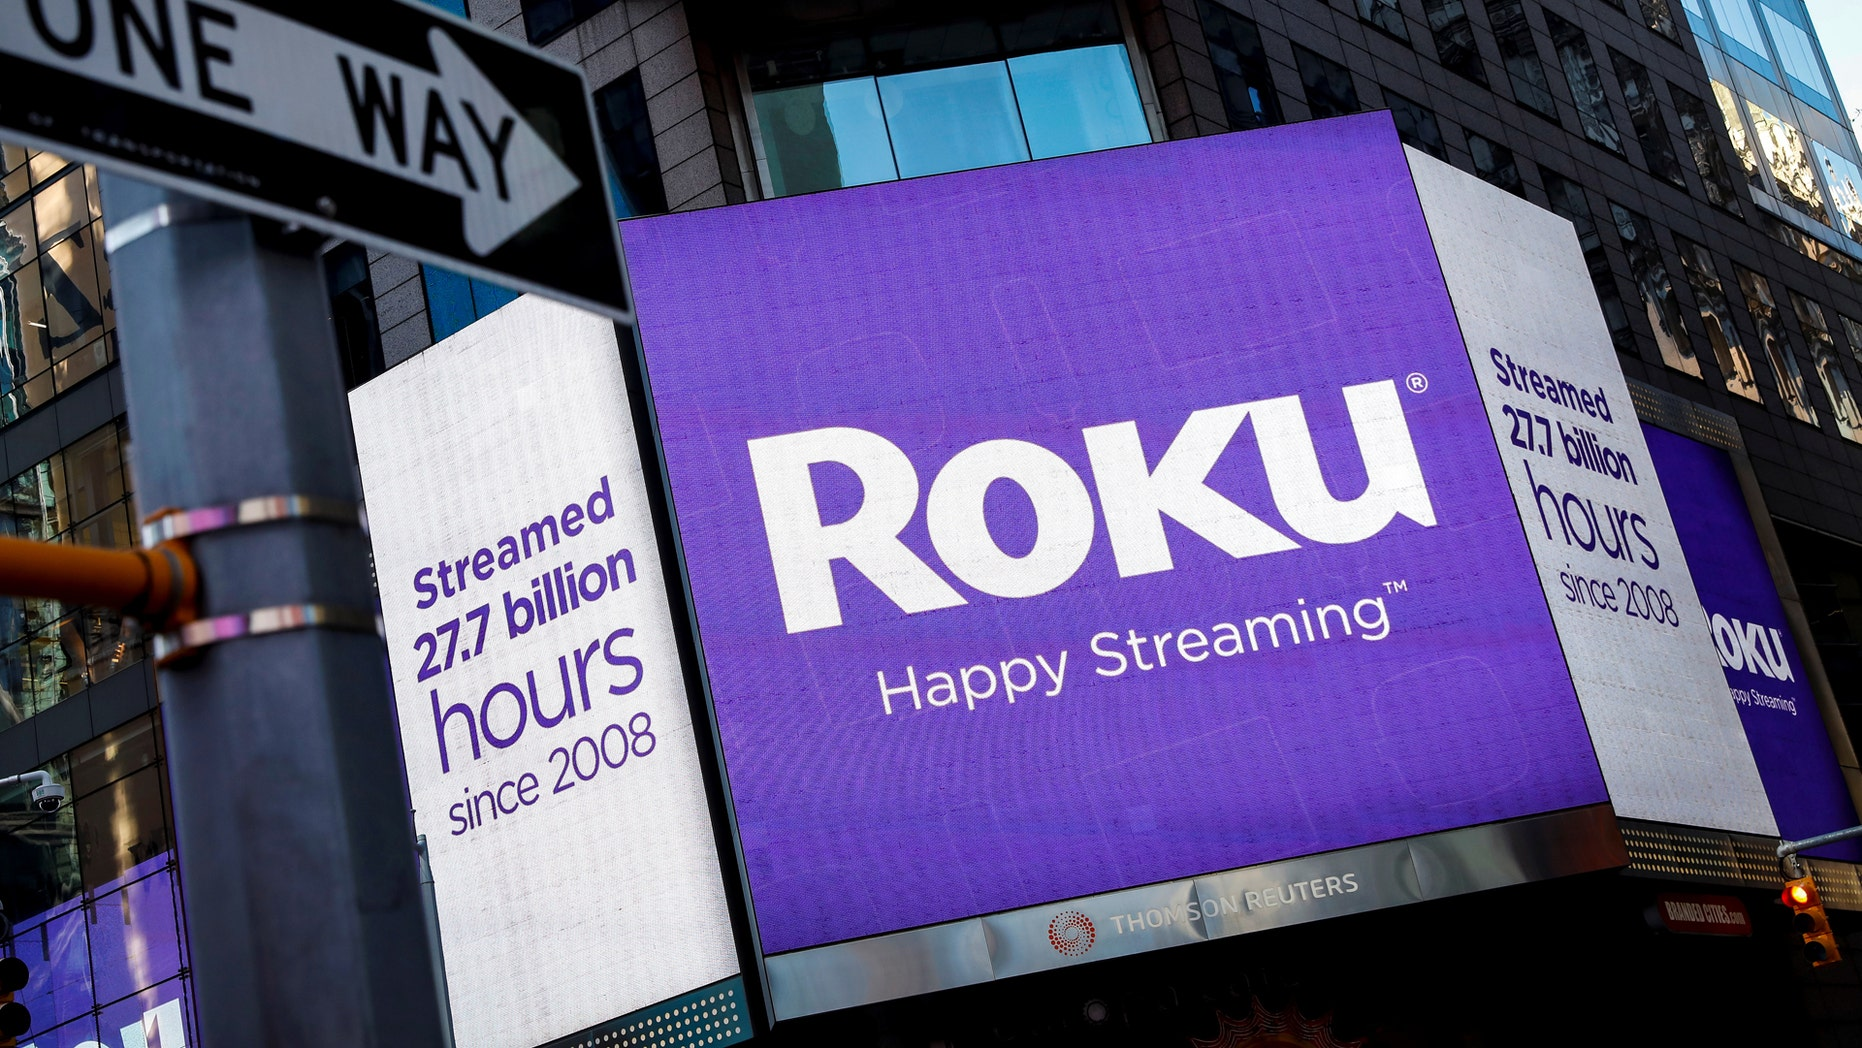 File photo: A video sign displays the logo for Roku Inc, a Fox-backed video streaming firm, in Times Square after the company's IPO at the Nasdaq Market in New York, U.S., September 28, 2017. (REUTERS/Brendan McDermid)